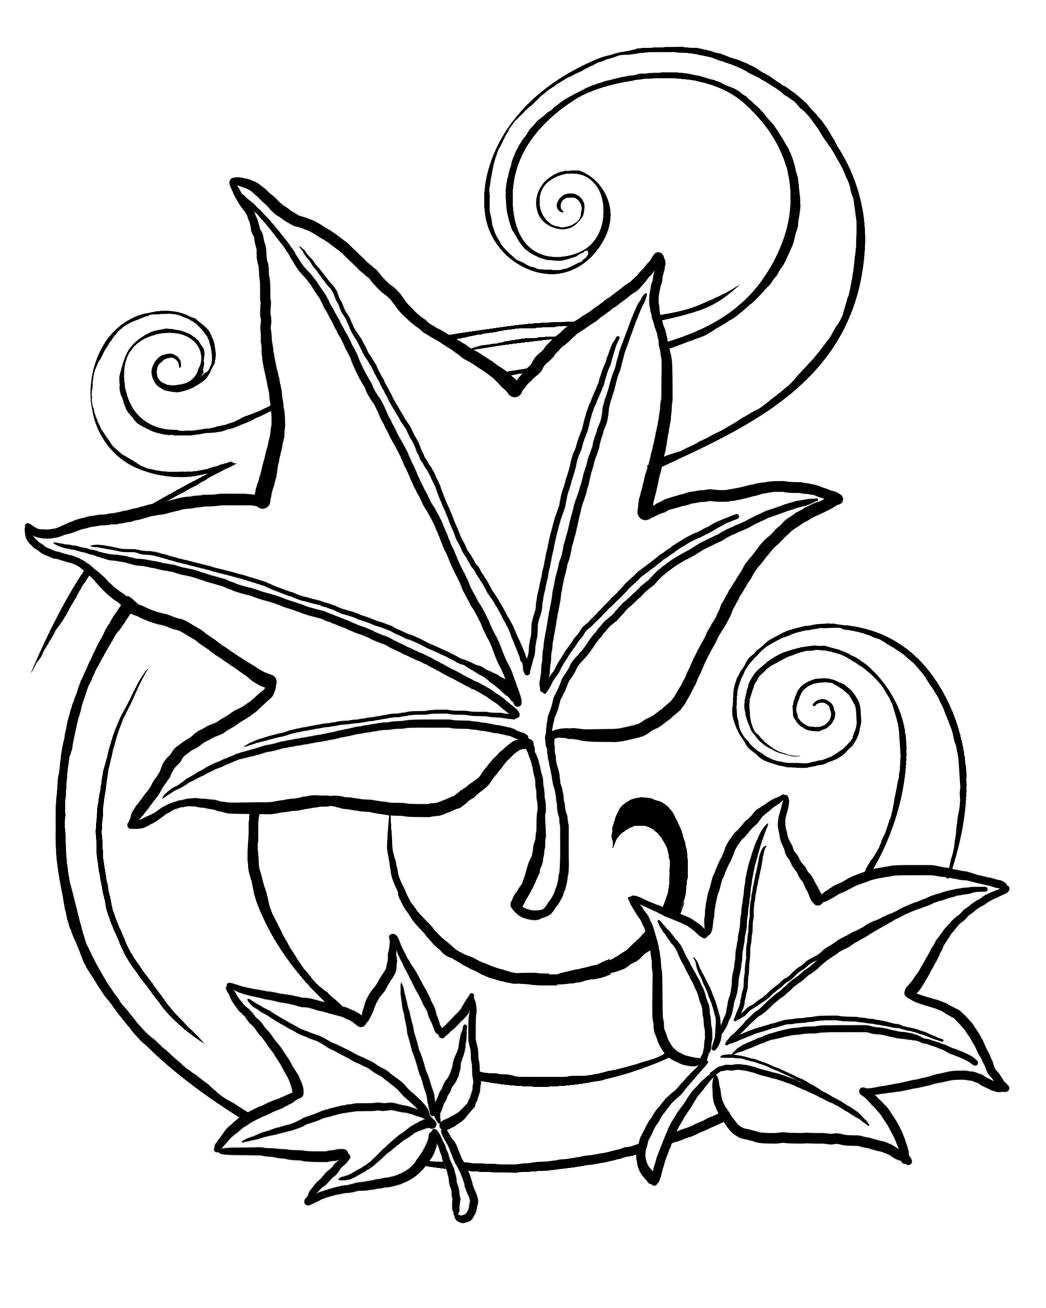 Coloring pages for donna flor - Leaves On Air Autumn Coloring Pages For Kids Printable Autumn And Fall Coloring Pages For Kids